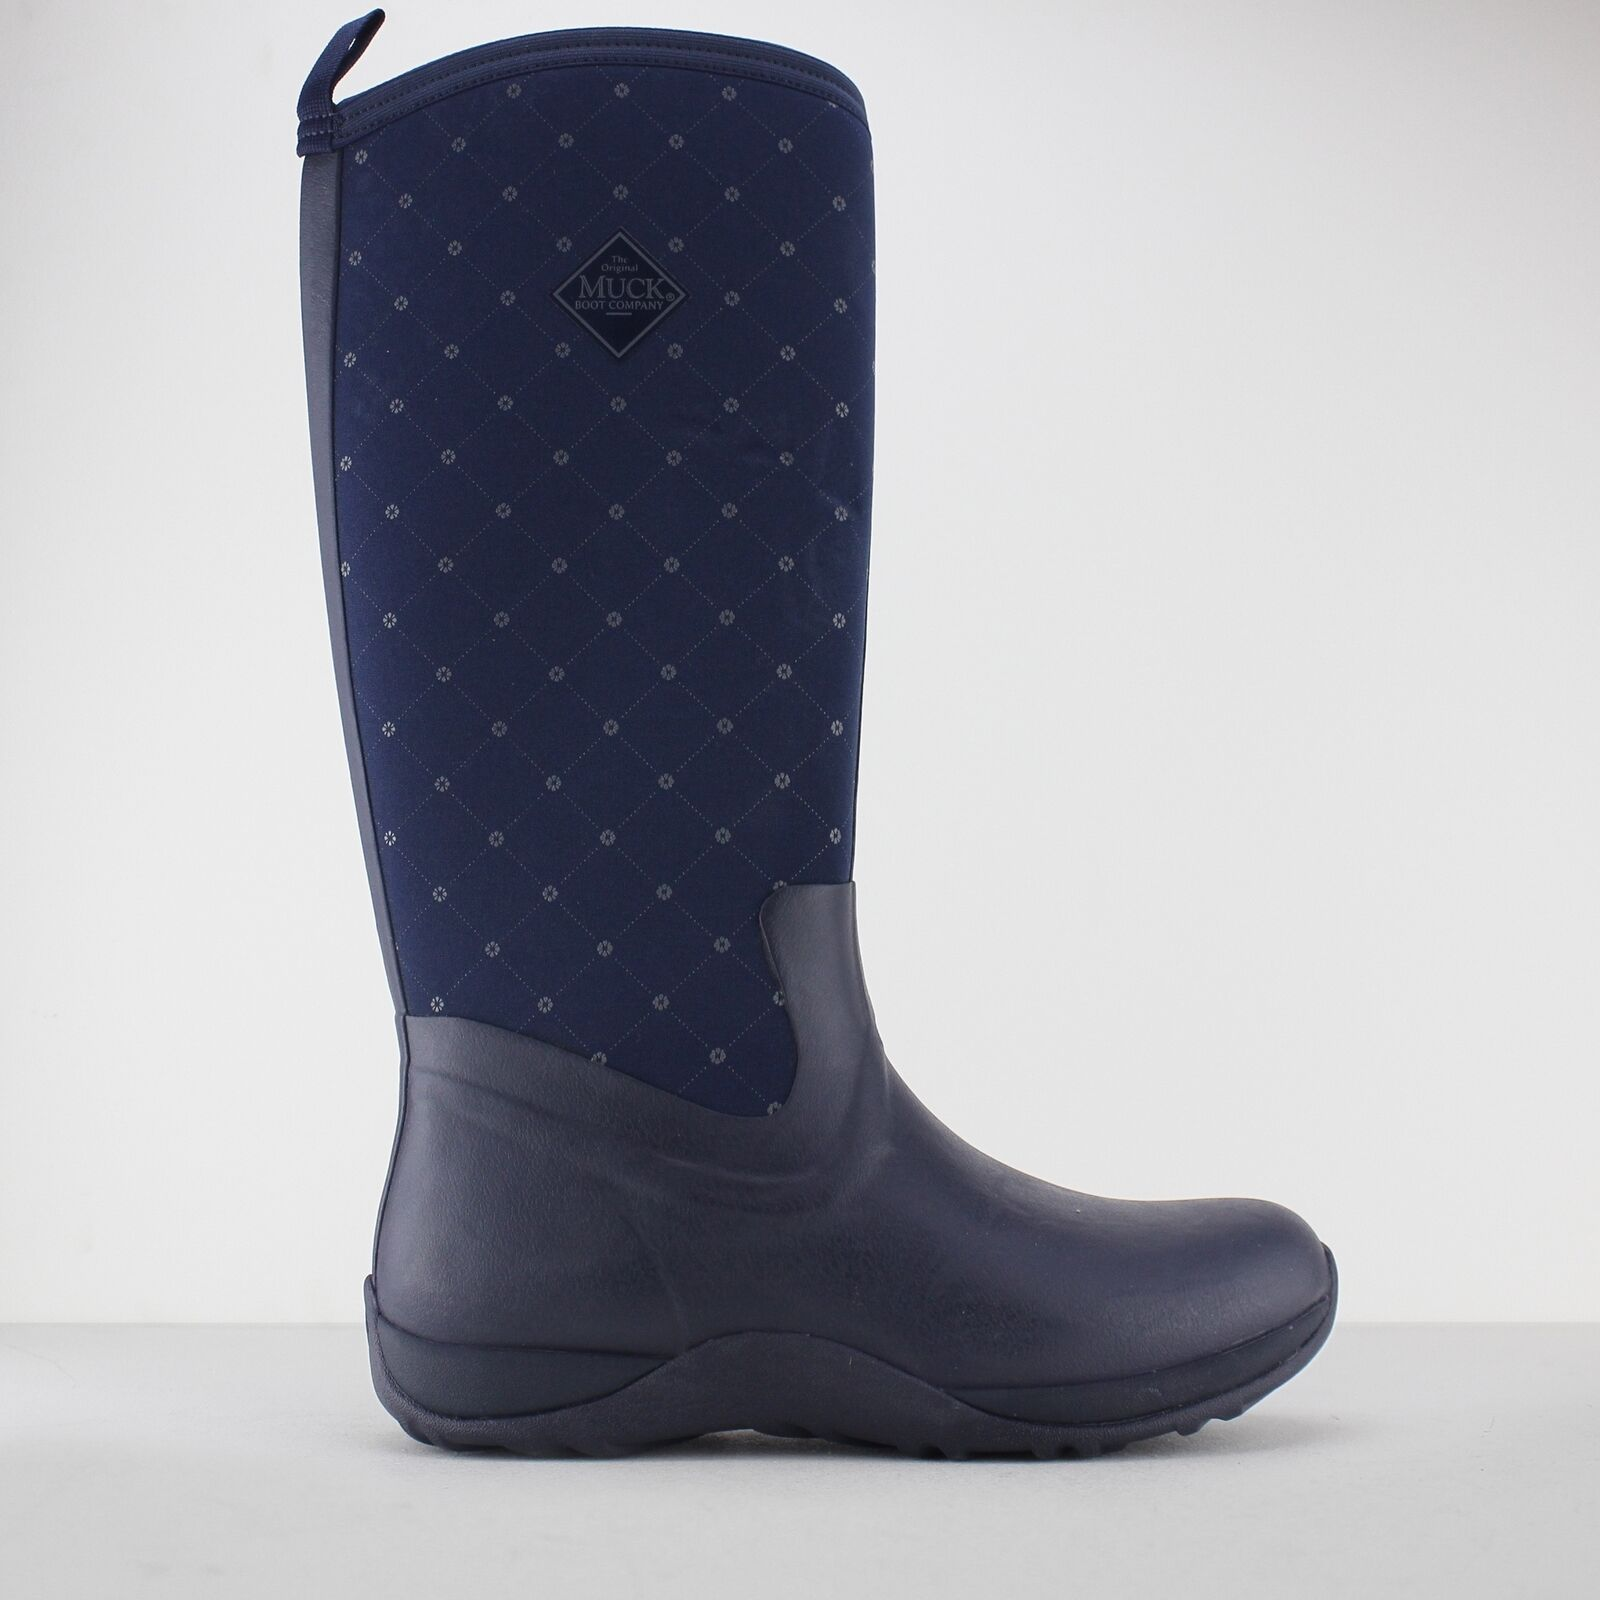 Muck Boots ARCTIC ADVENTURE Ladies Womens Warm Comfy Wellington Boots Navy Quilt